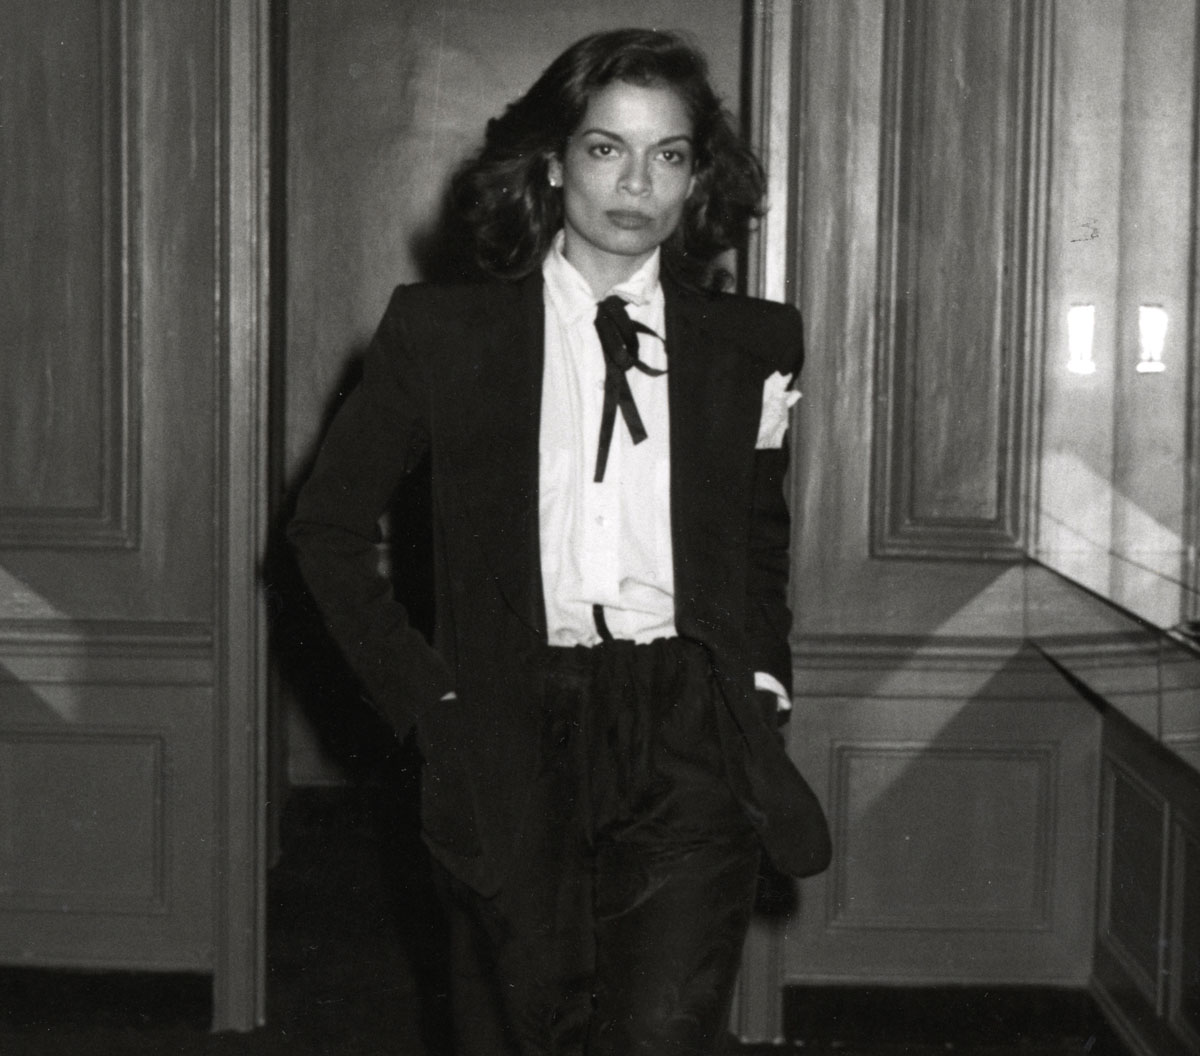 Bianca Jagger, 1978 ©Ron Galella/Getty Images